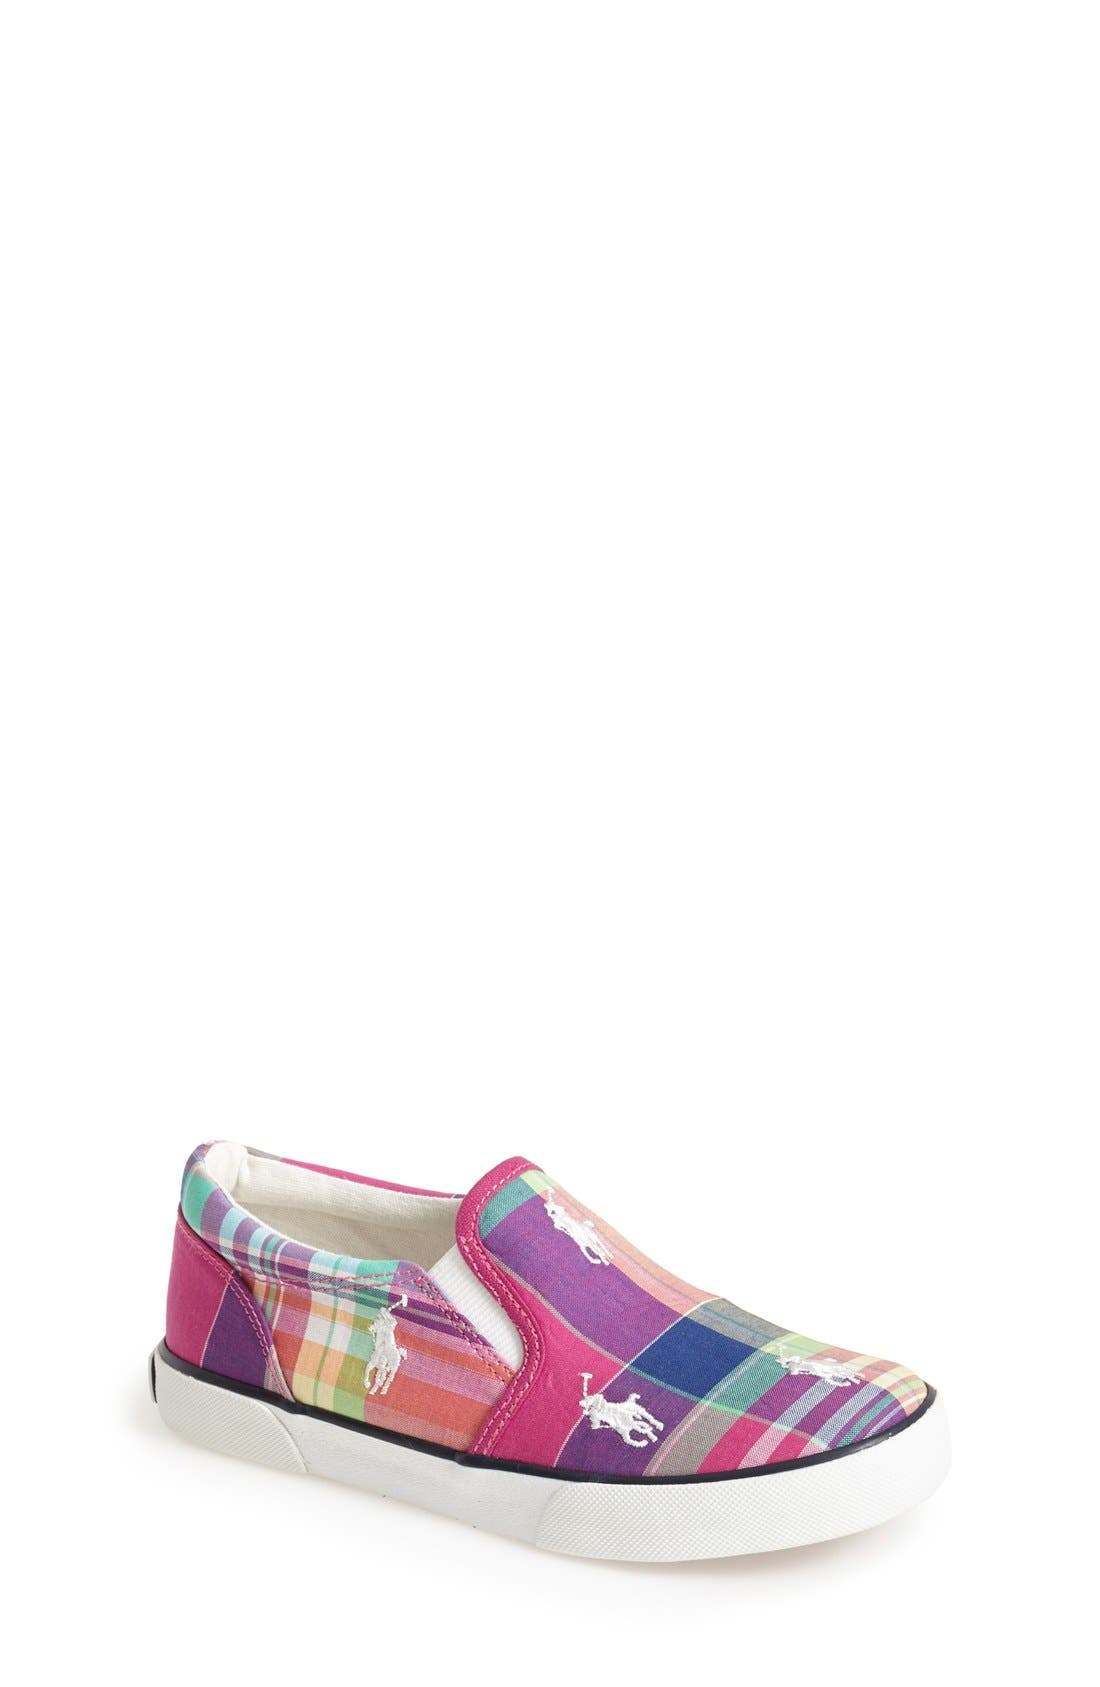 Alternate Image 1 Selected - Ralph Lauren Plaid Sneaker (Baby, Walker, Toddler & Little Kid)